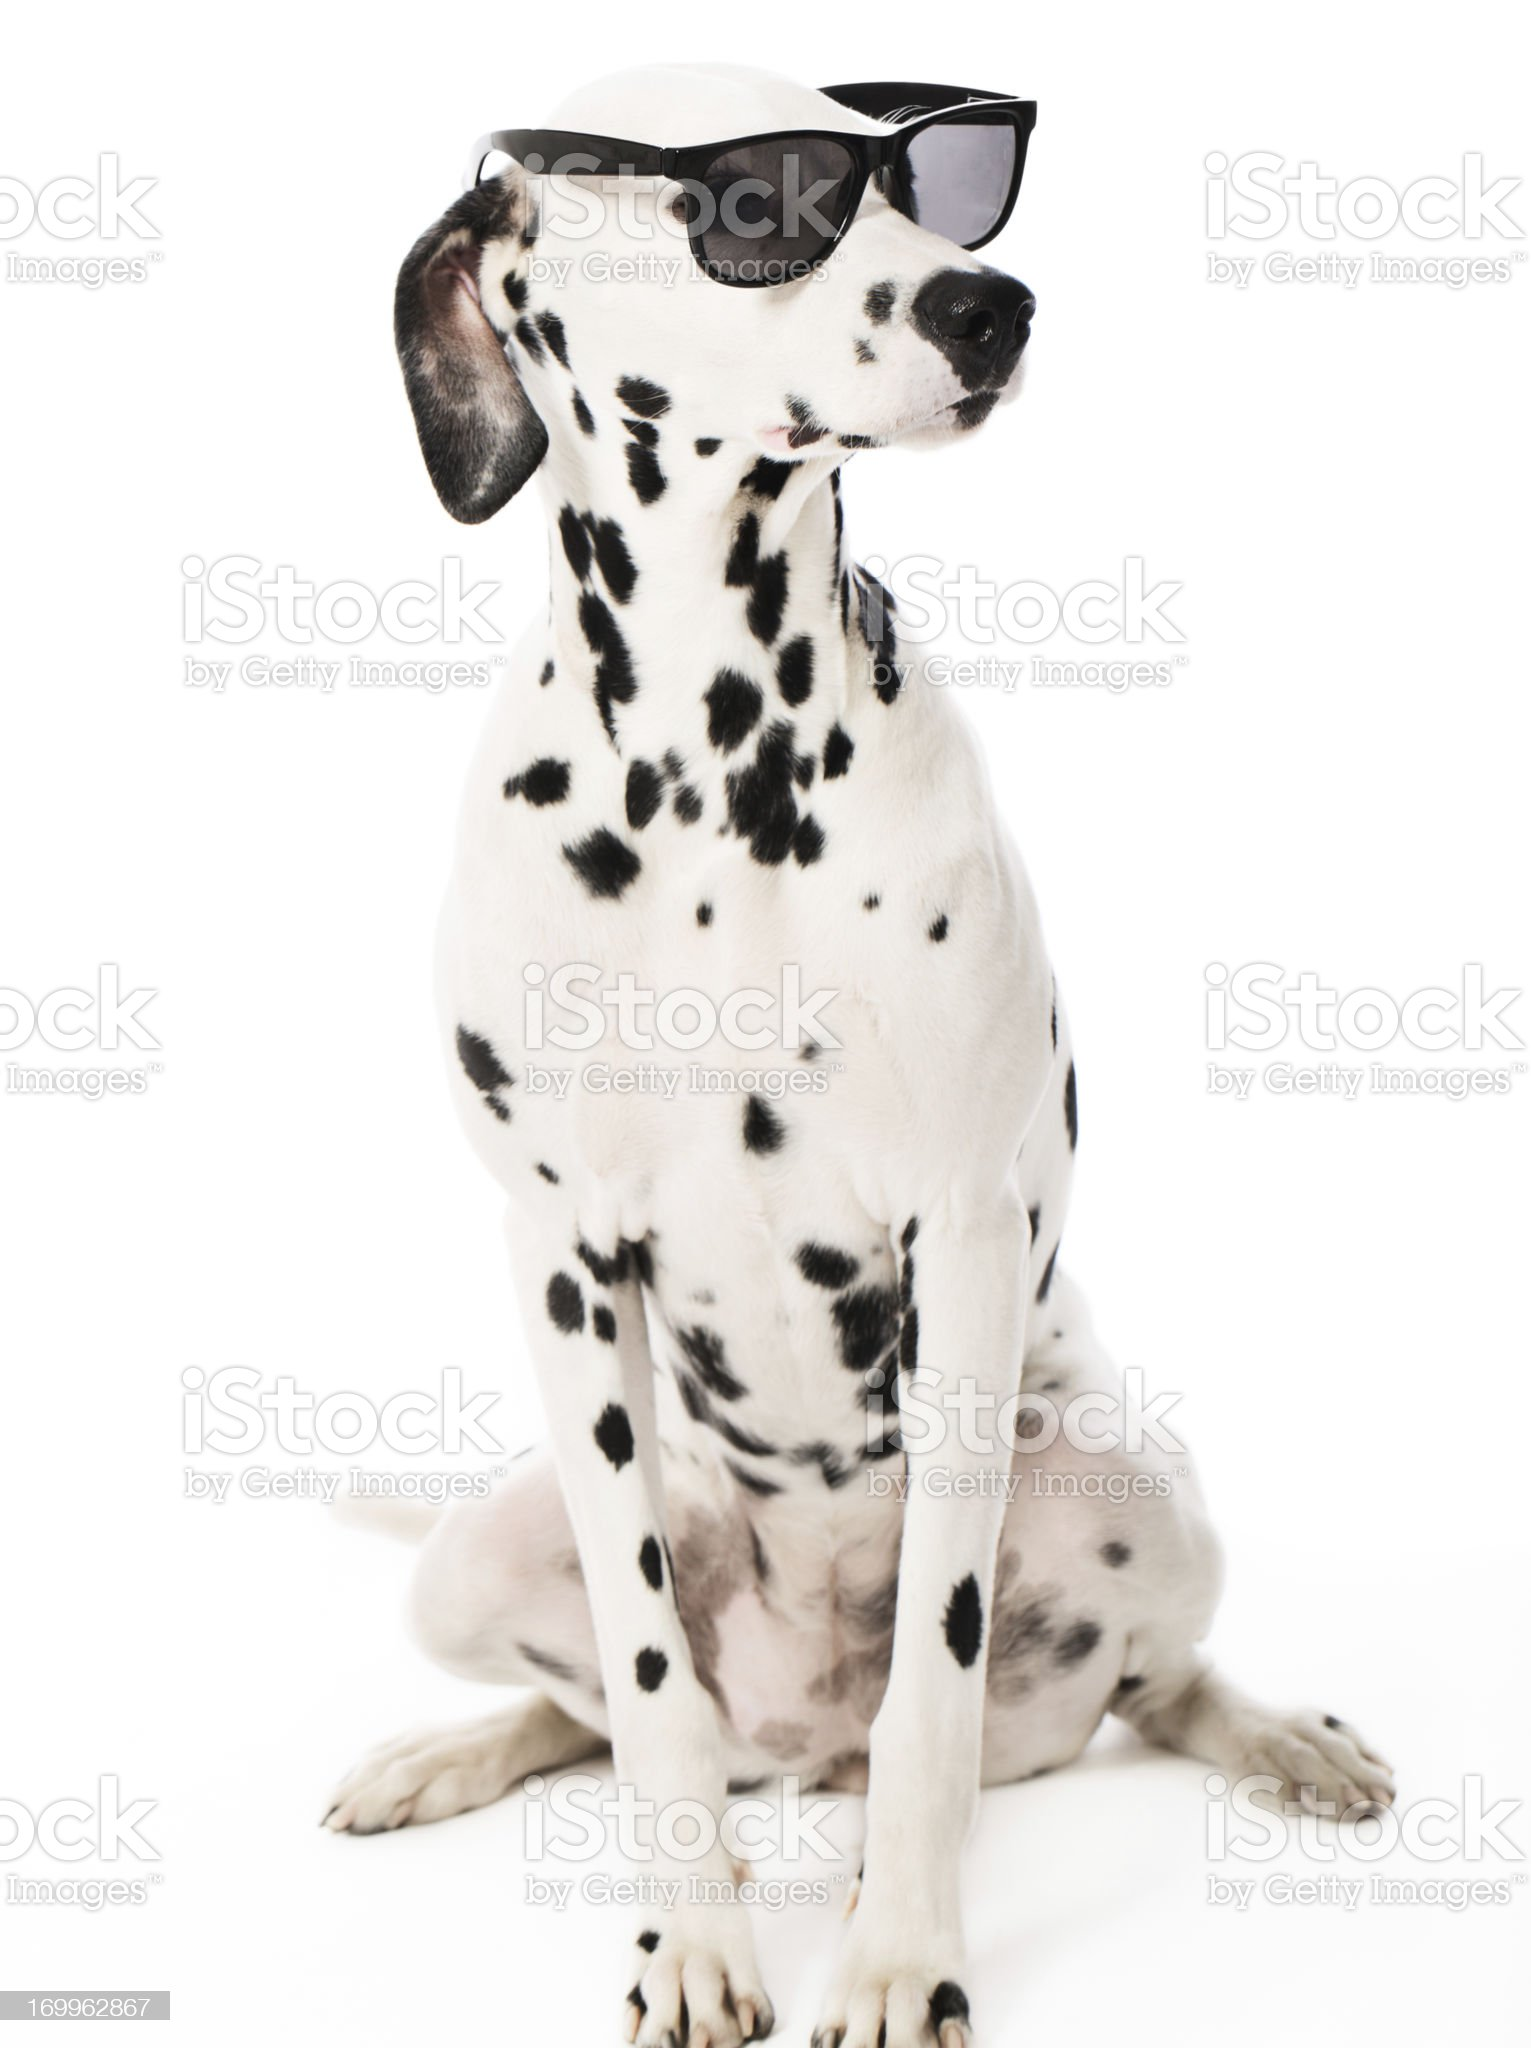 Cool Dalmatian with Sunglasses royalty-free stock photo